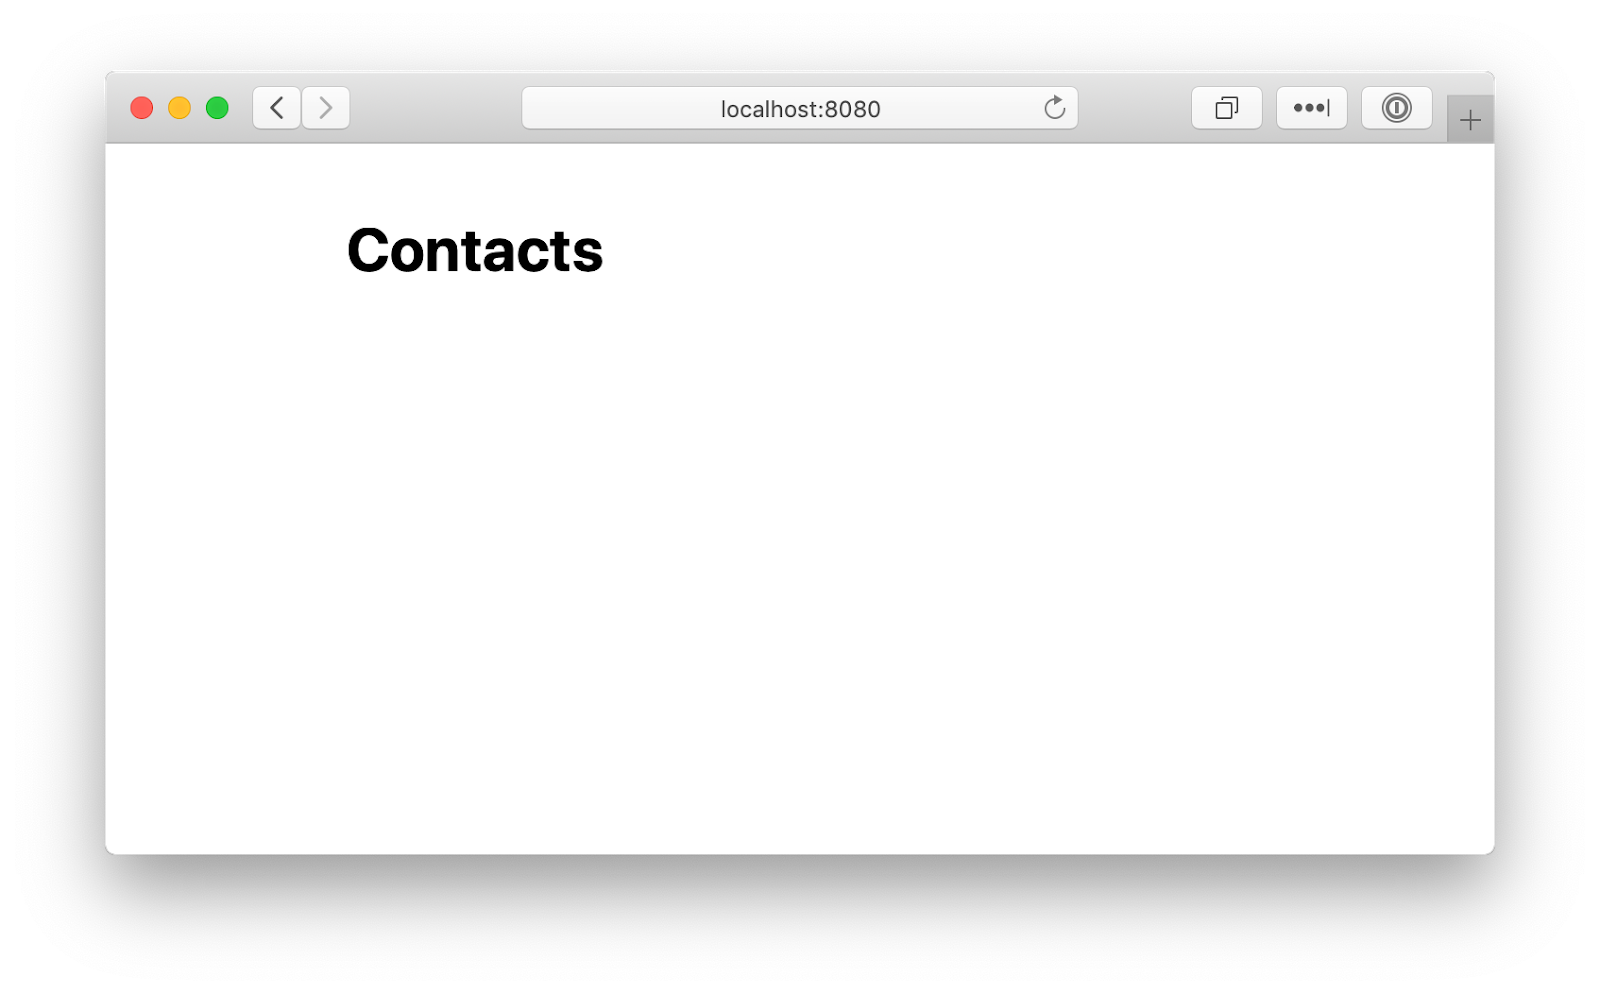 Creating a Simple Contacts List with Go and PostgreSQL